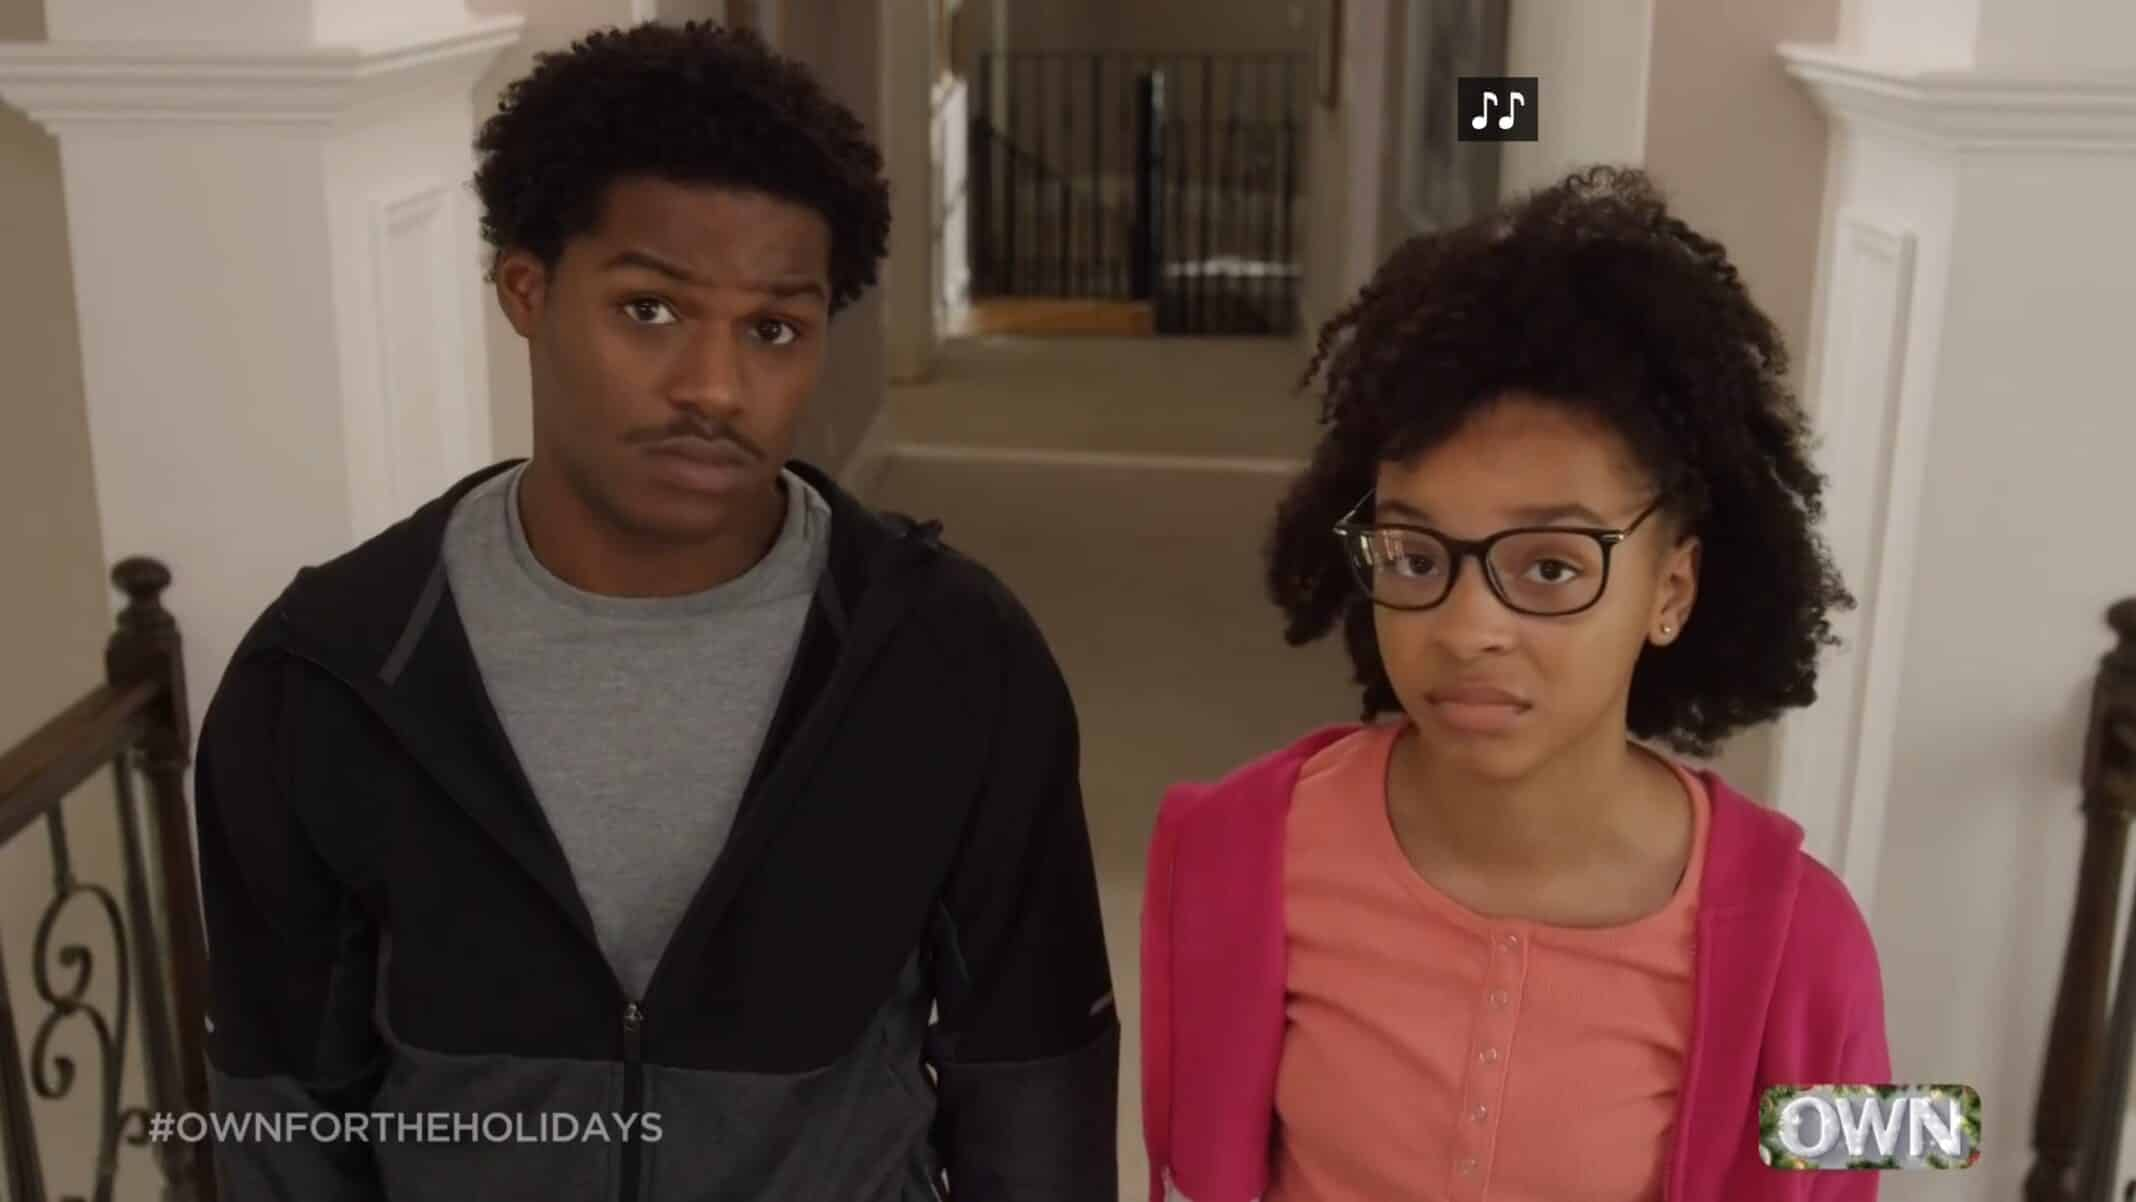 DJ (Khamary Grant) and Lindsay (Lindsey Amani Blackwell) after their dad calls them to attention